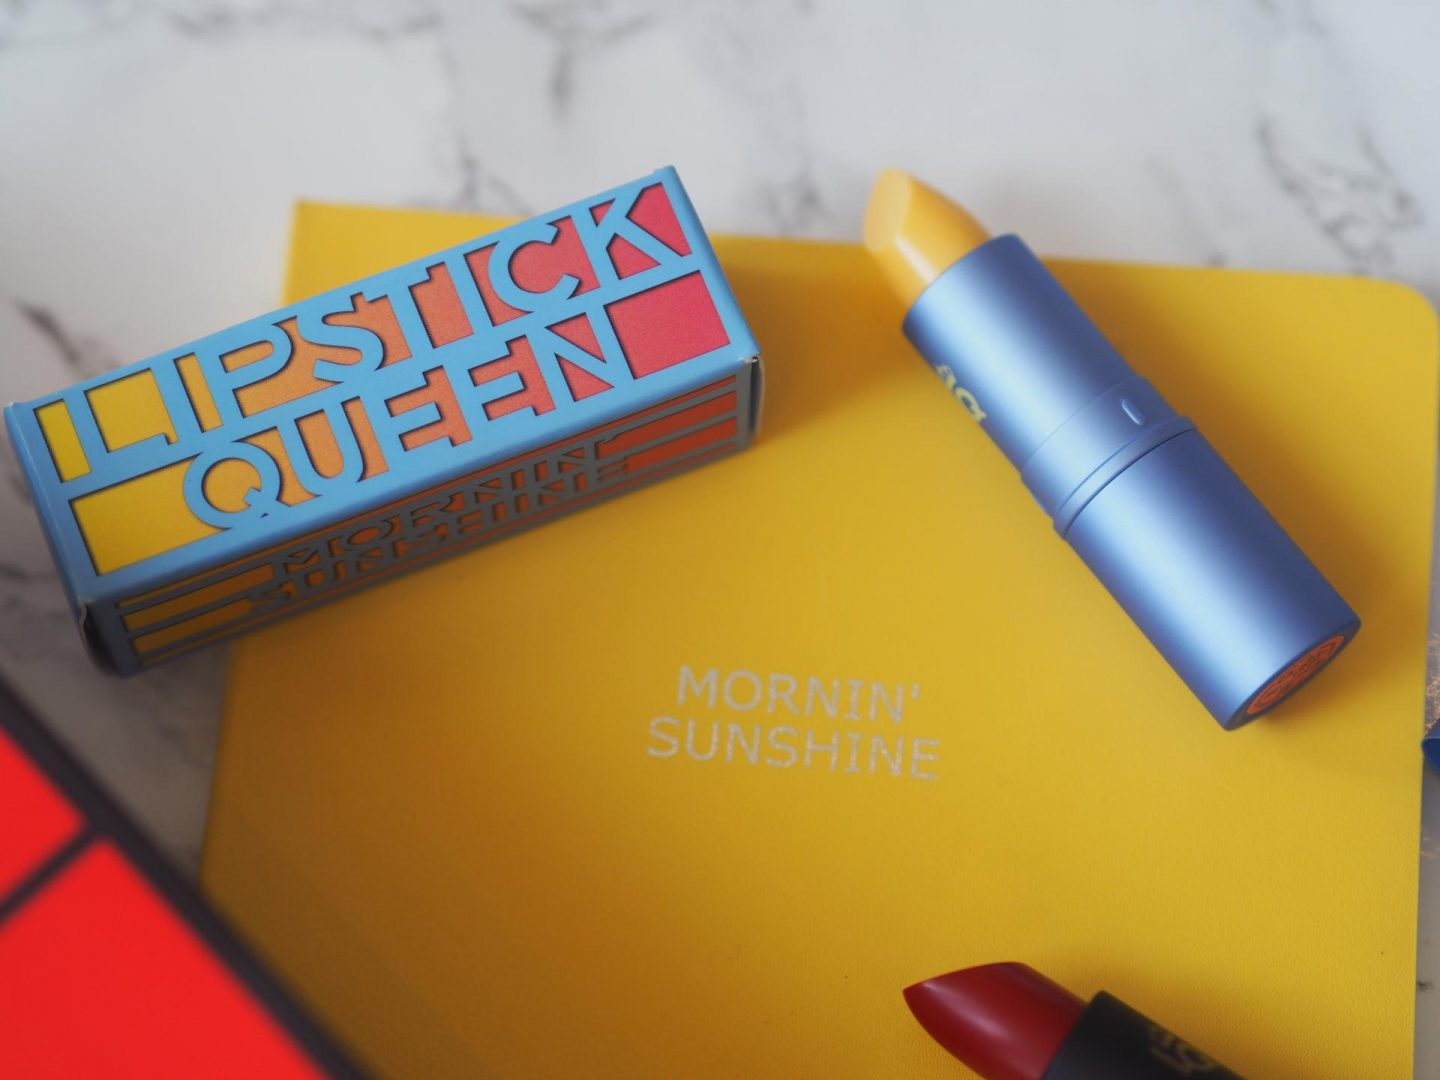 Around The World Beauty - Product: Lipstick Queen (Australia) and Morning Sunshine and Lipstick Queen Sinners Collection